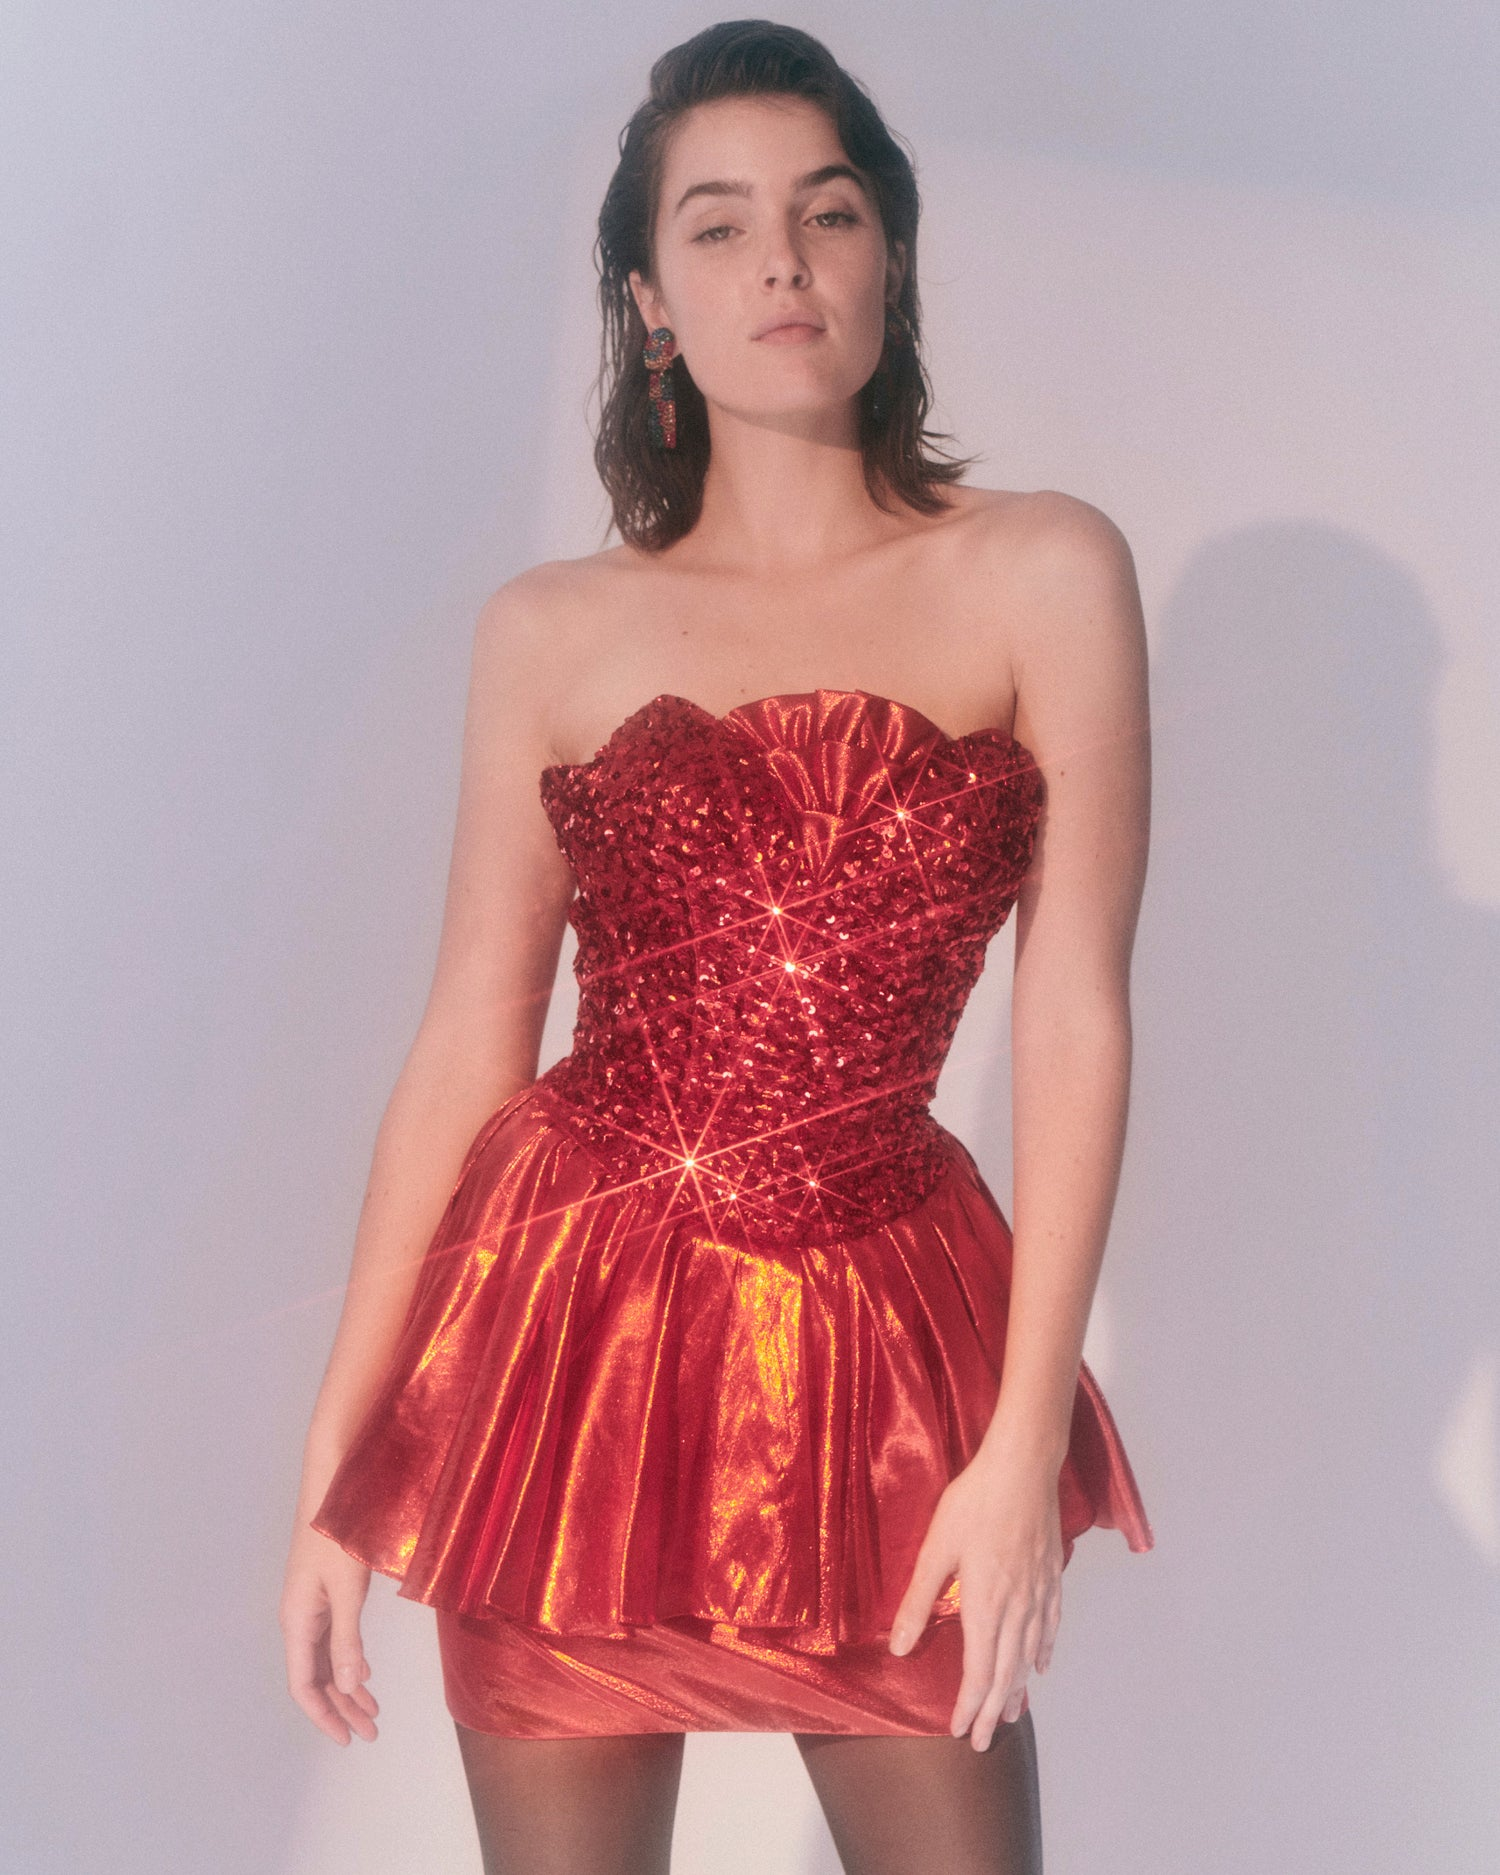 99 Red Balloons // Sequin Lamé Dress